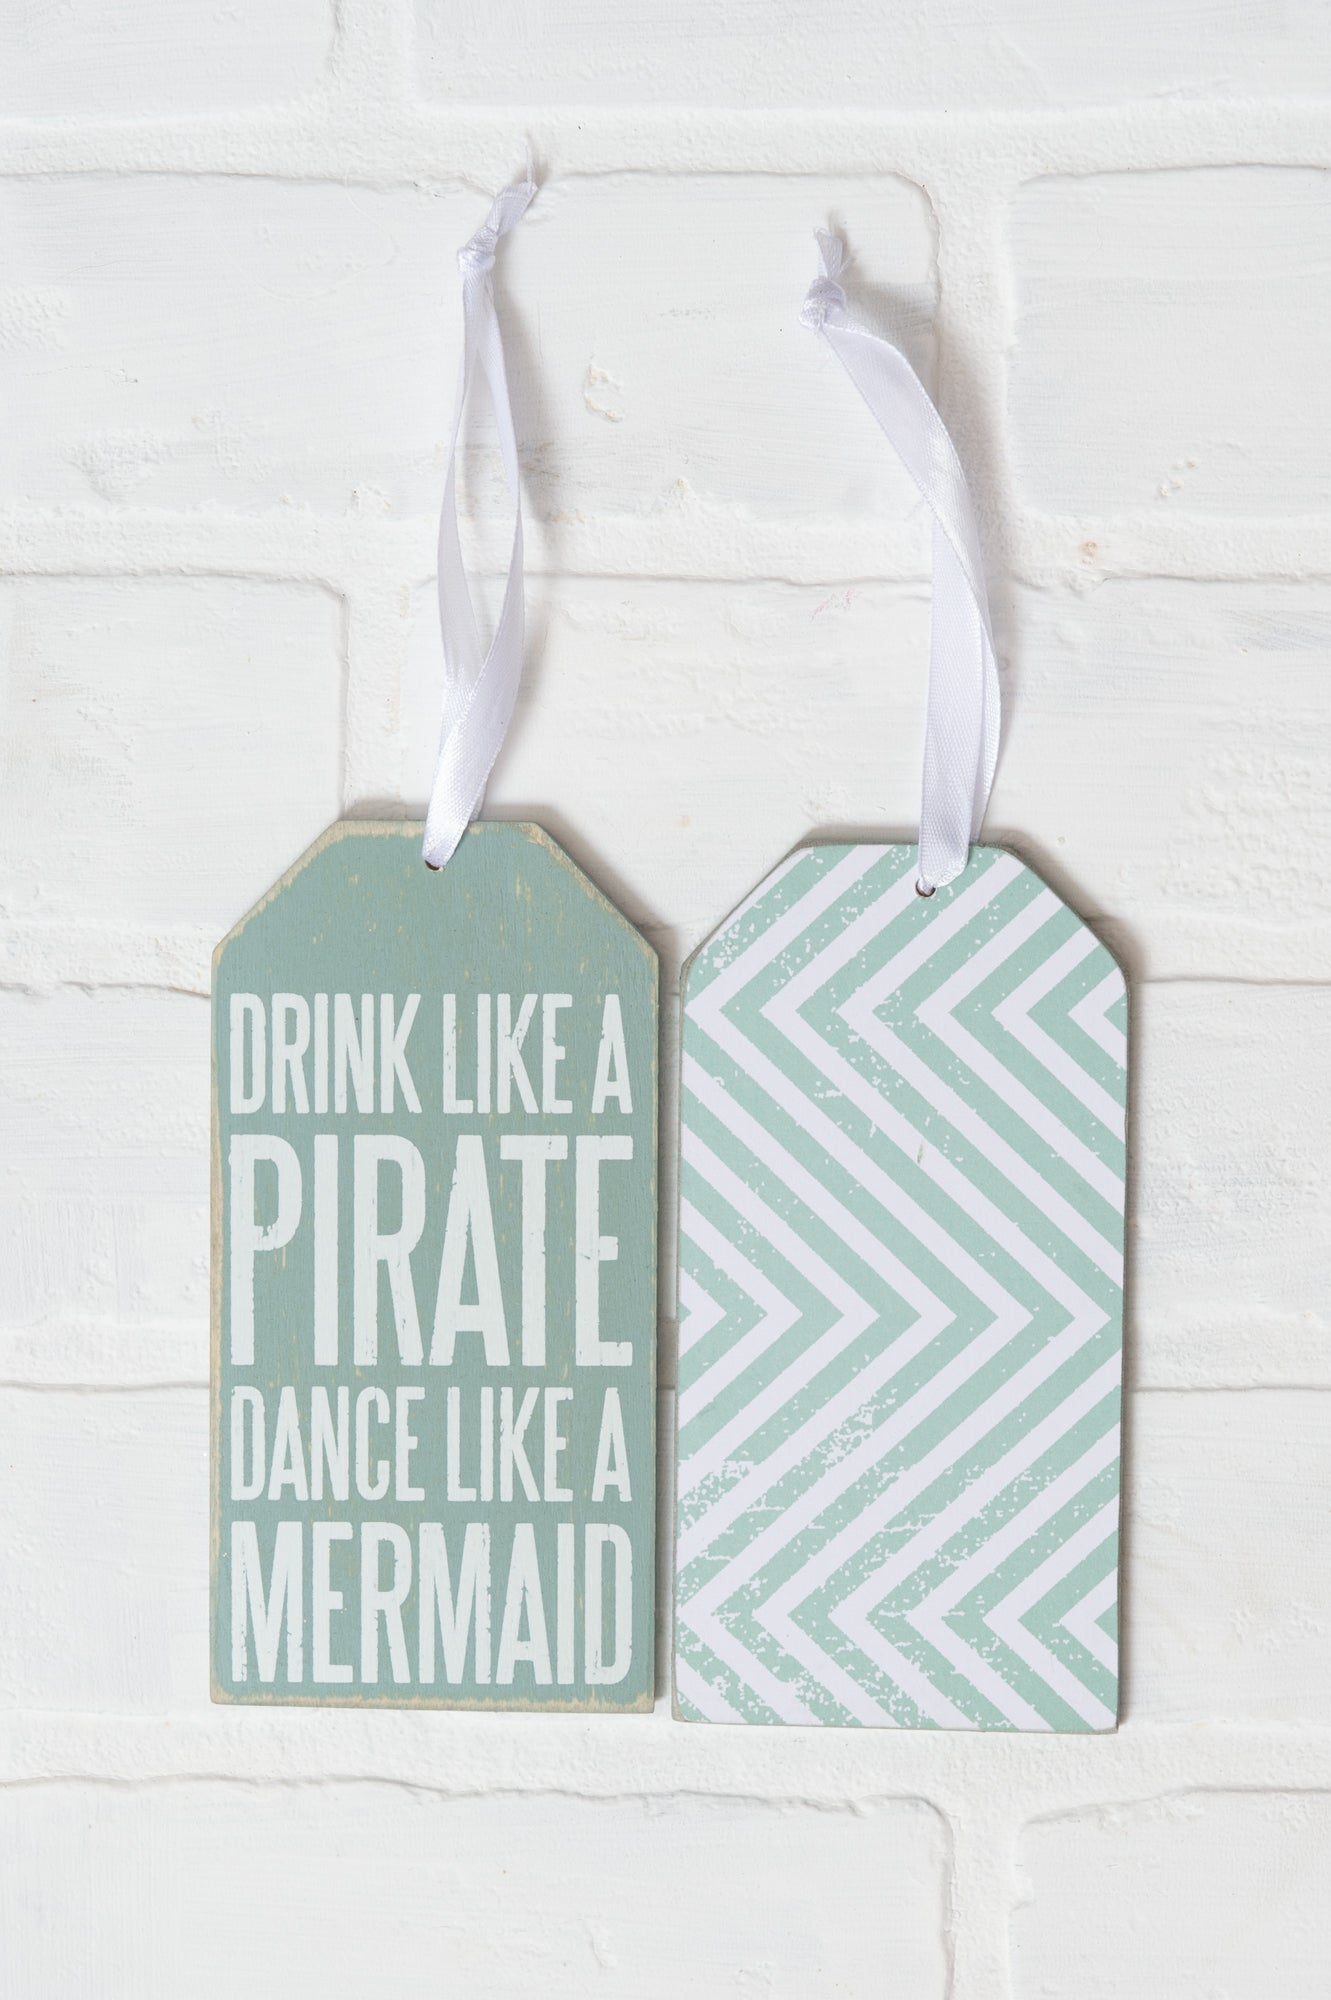 Drink Like a Pirate Bottle Tag